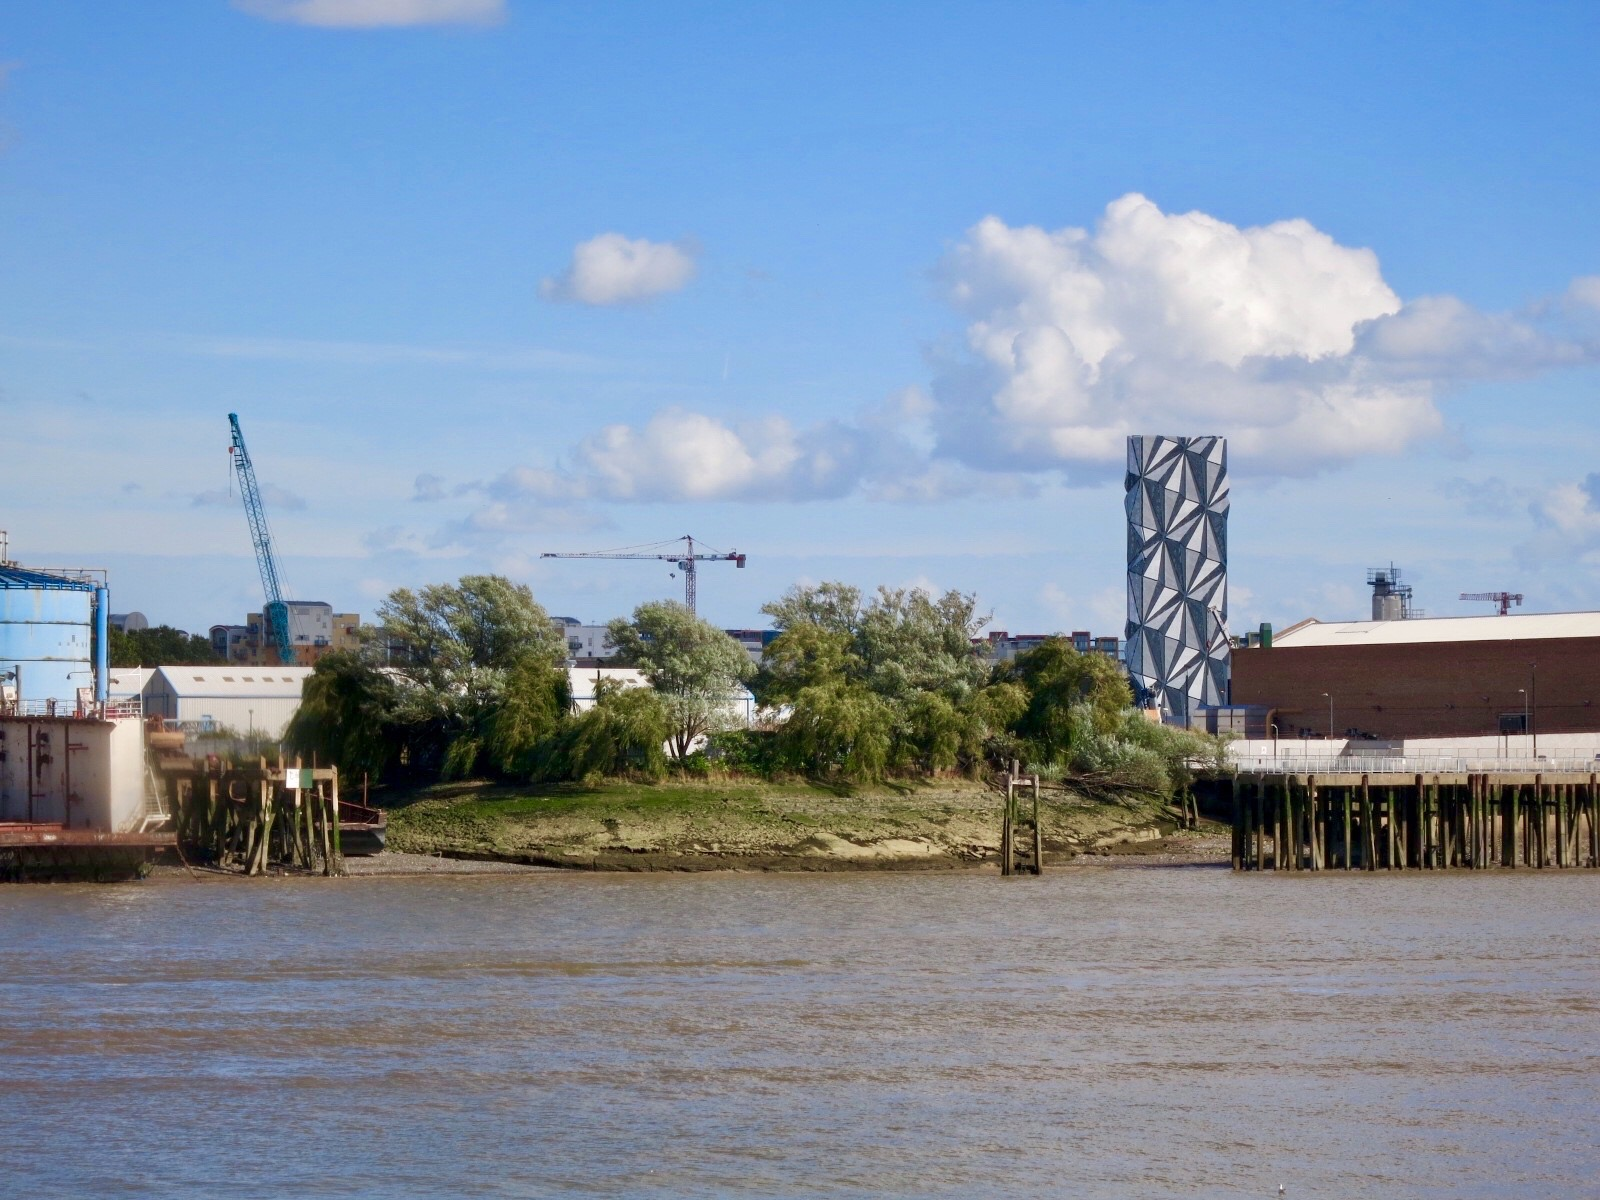 Developer U+I's (formerly Catherdral's) Morden Wharf site and former Tunnel Glucose Wharf.